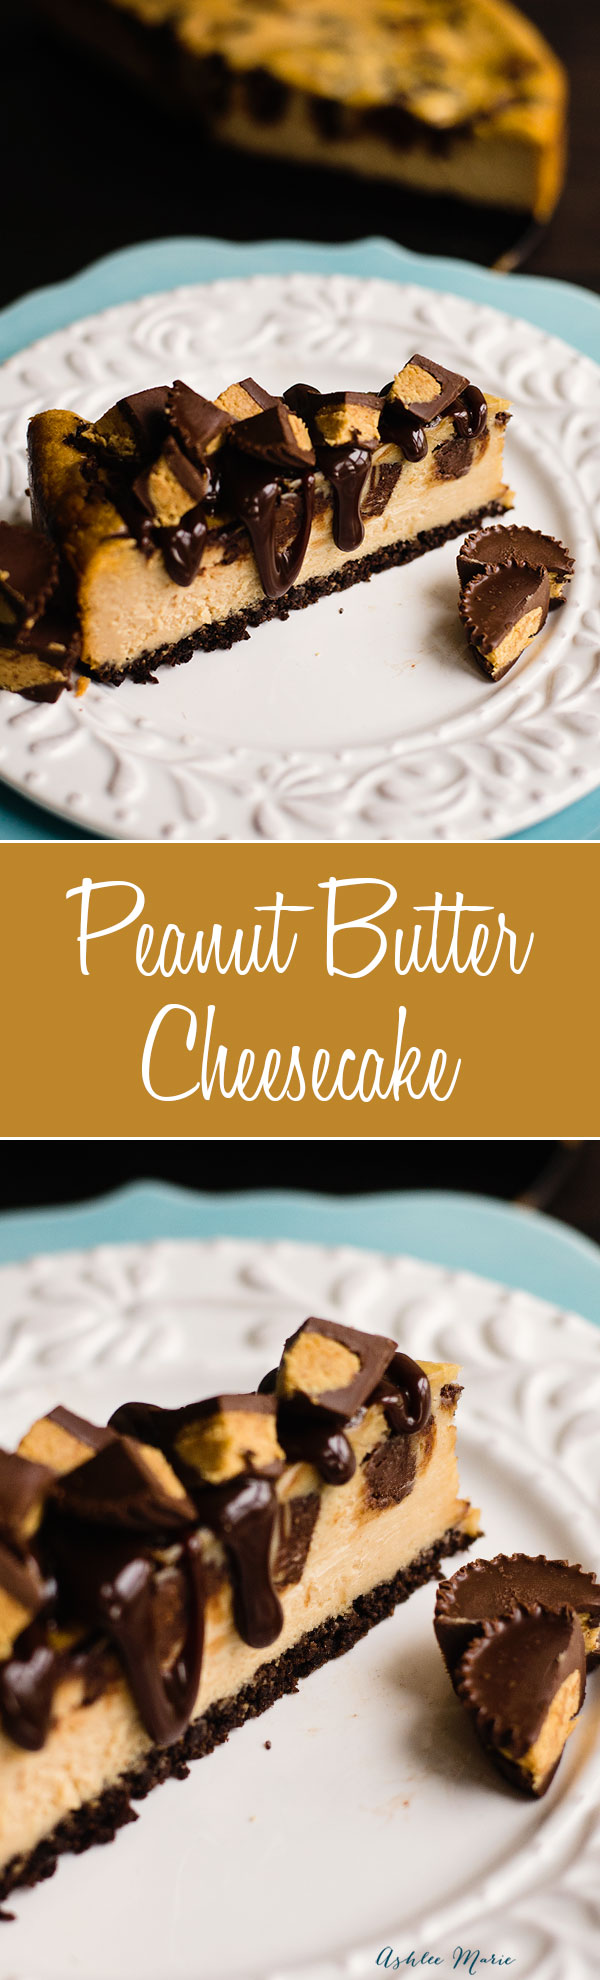 this peanut butter flavored cheesecake has a chocolate crust, with chunks of peanut butter cups and topped with hot fudge